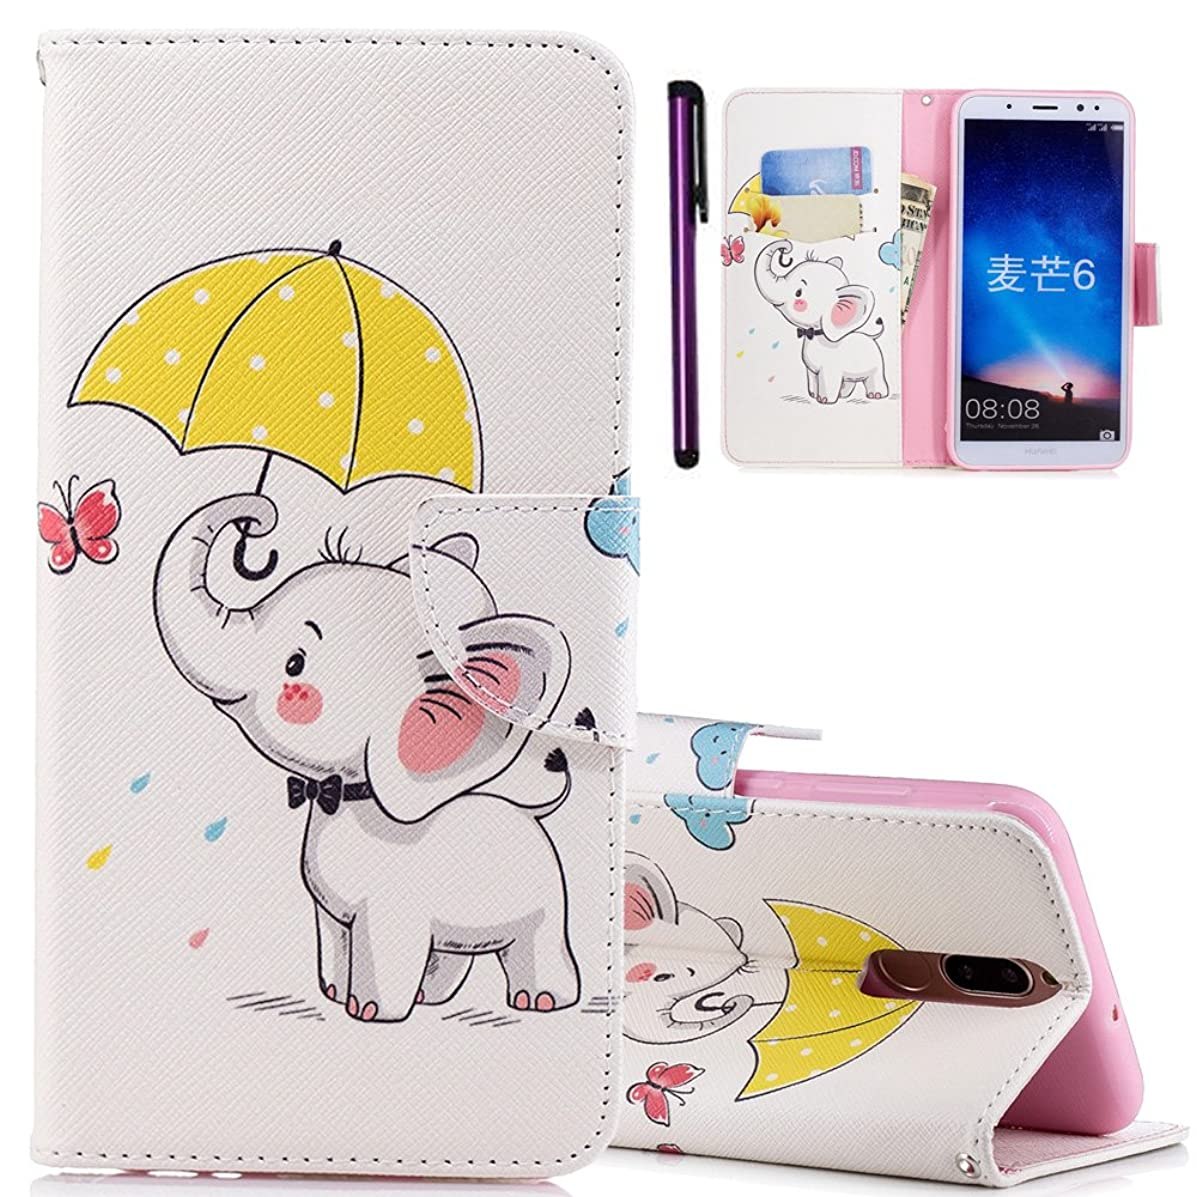 Huawei Mate 10 Lite Case ISADENSER Colorful Series Card Holder With Stand Feature Double Layer Shock Absorbing Premium Soft PU Leather Wallet Cover Flip Cases For Huawei Mate 10 Lite Umbrella Elephant